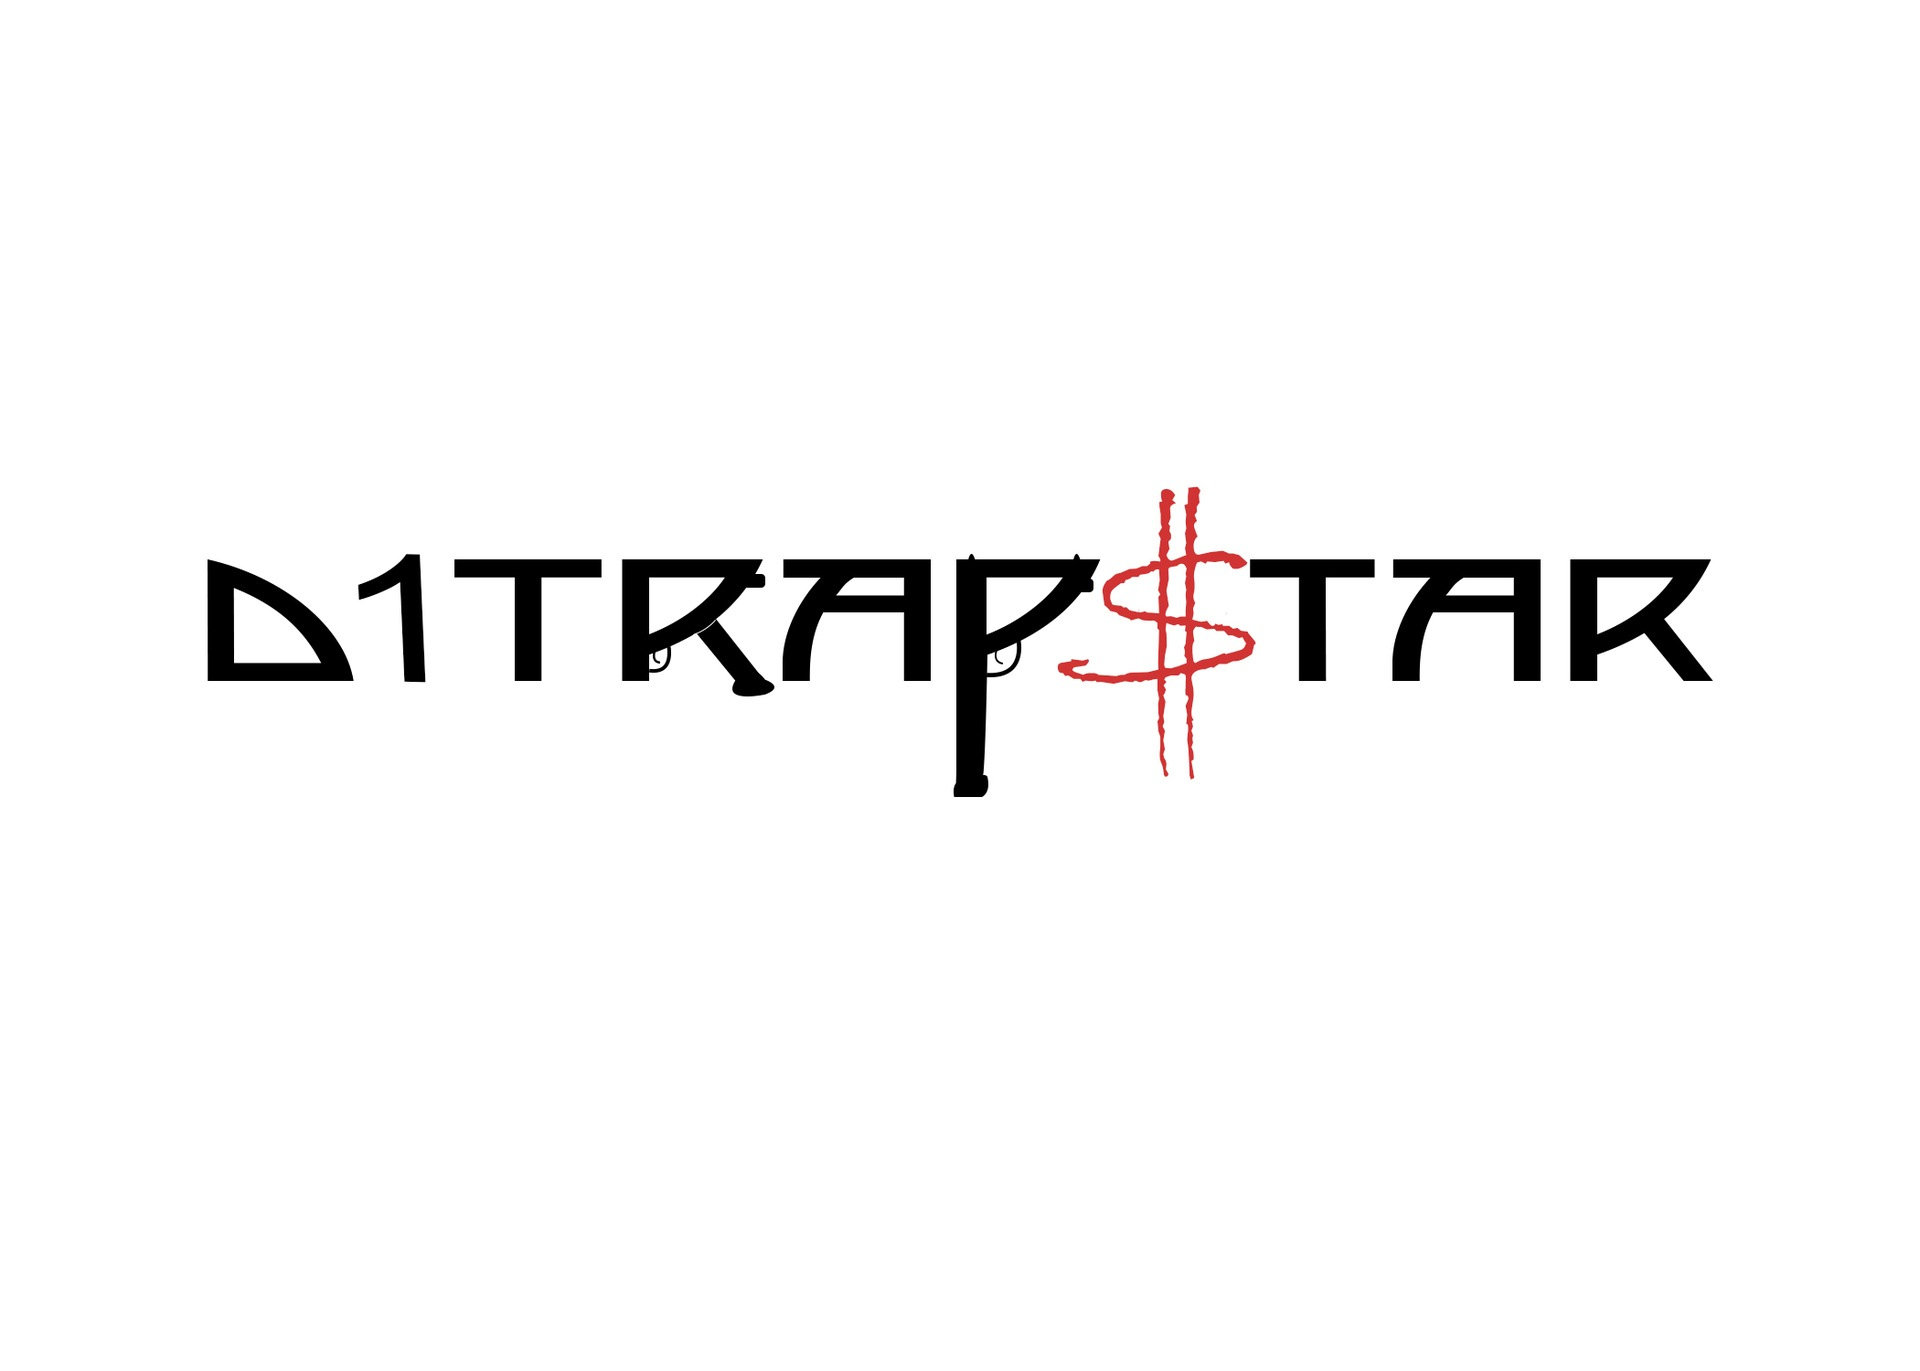 D1trapstar Store